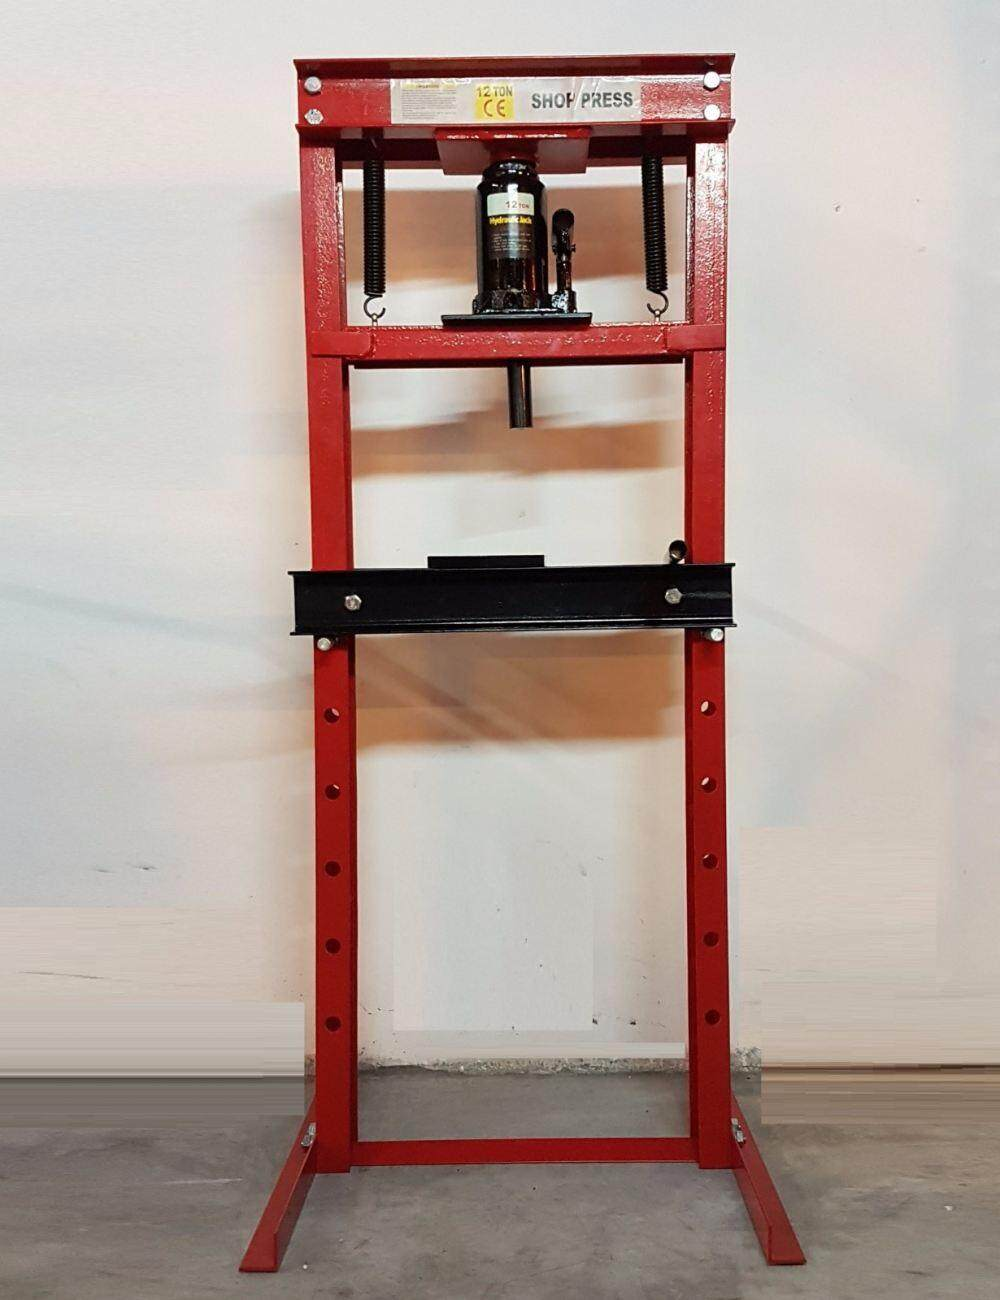 12ton Shop Press W/out Meter Id447134 By Knight Auto S/b.